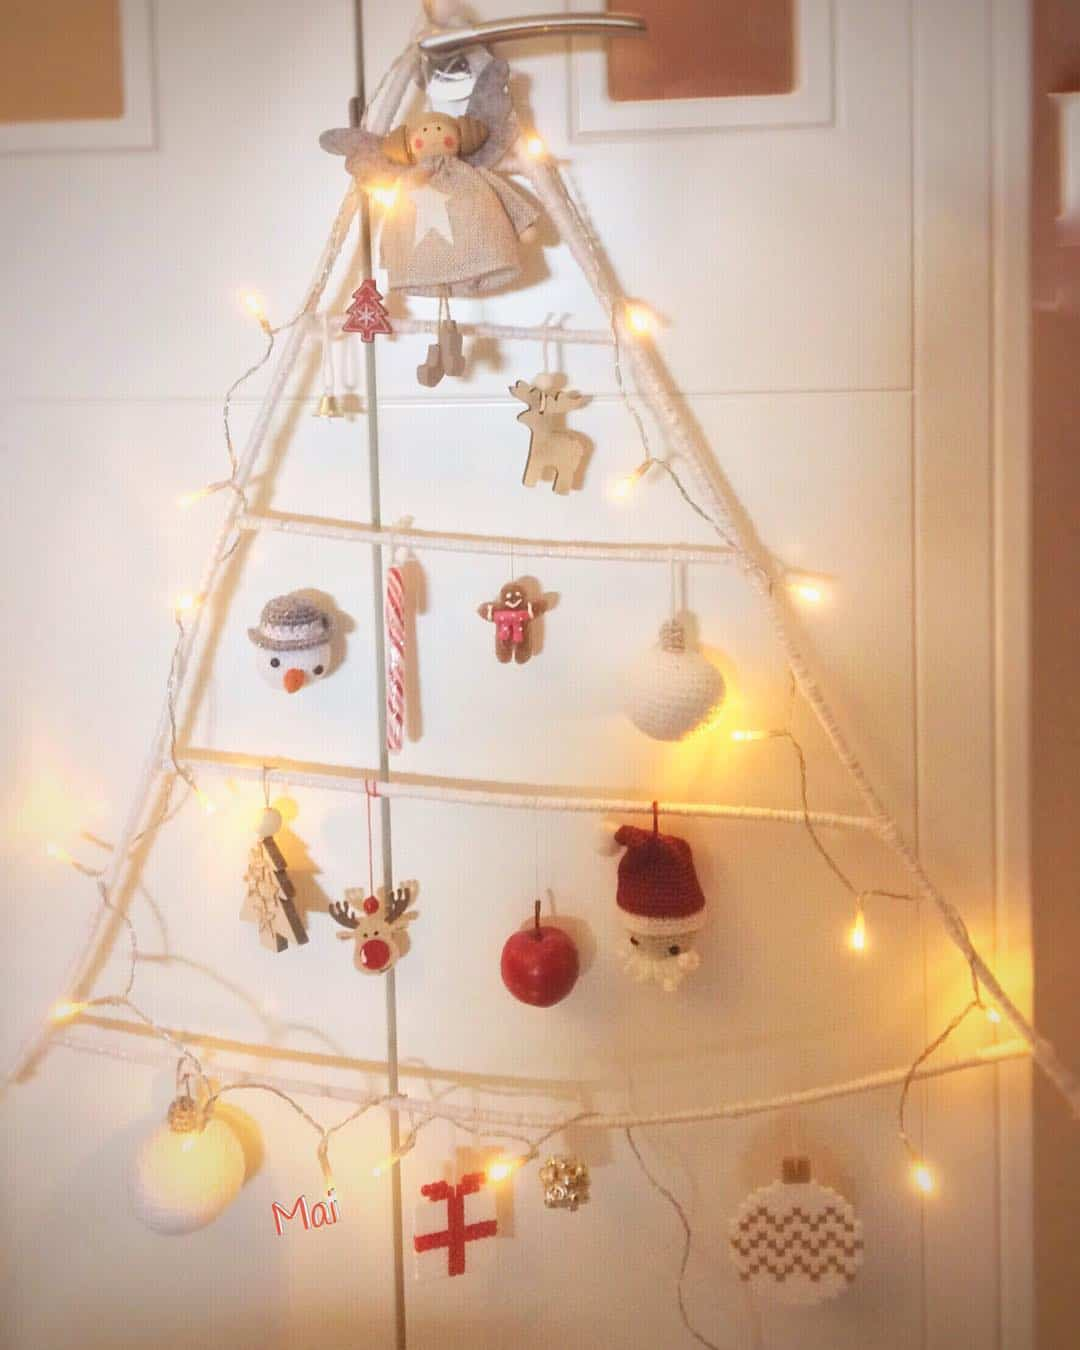 Christmas-decorations-2020-DIY-Xmas-decorations